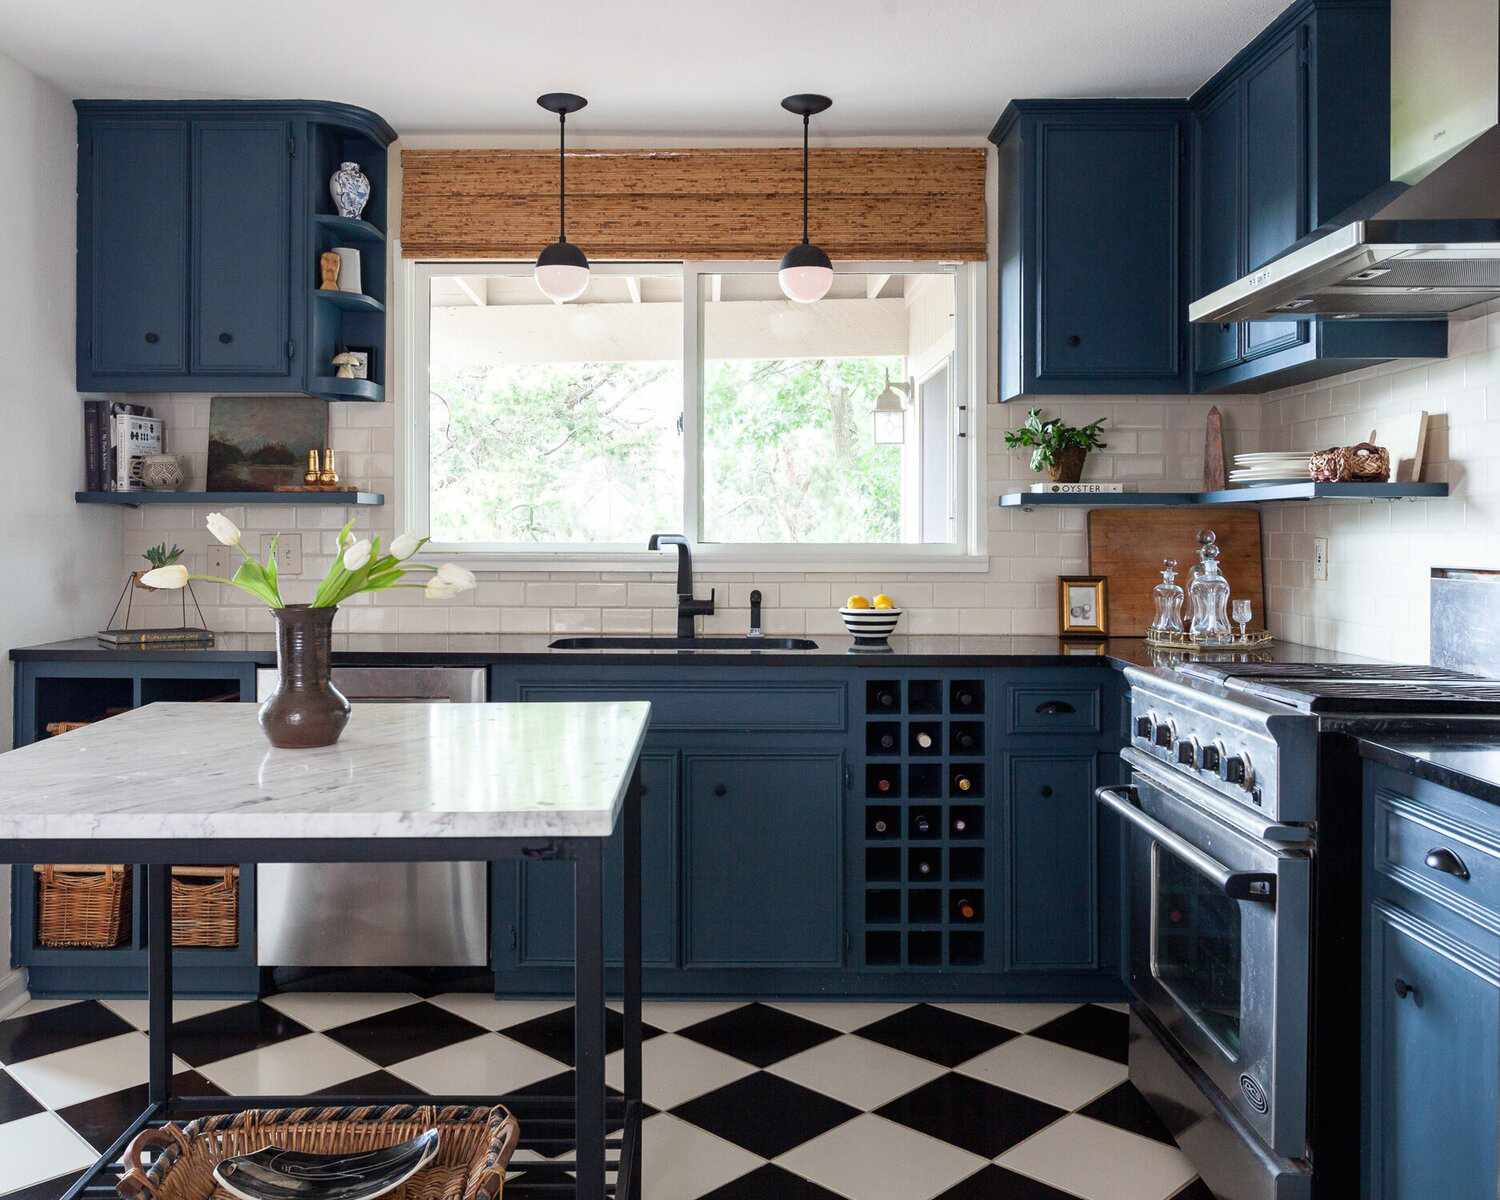 A kitchen with blue cabinets and black-and-white tiled floors